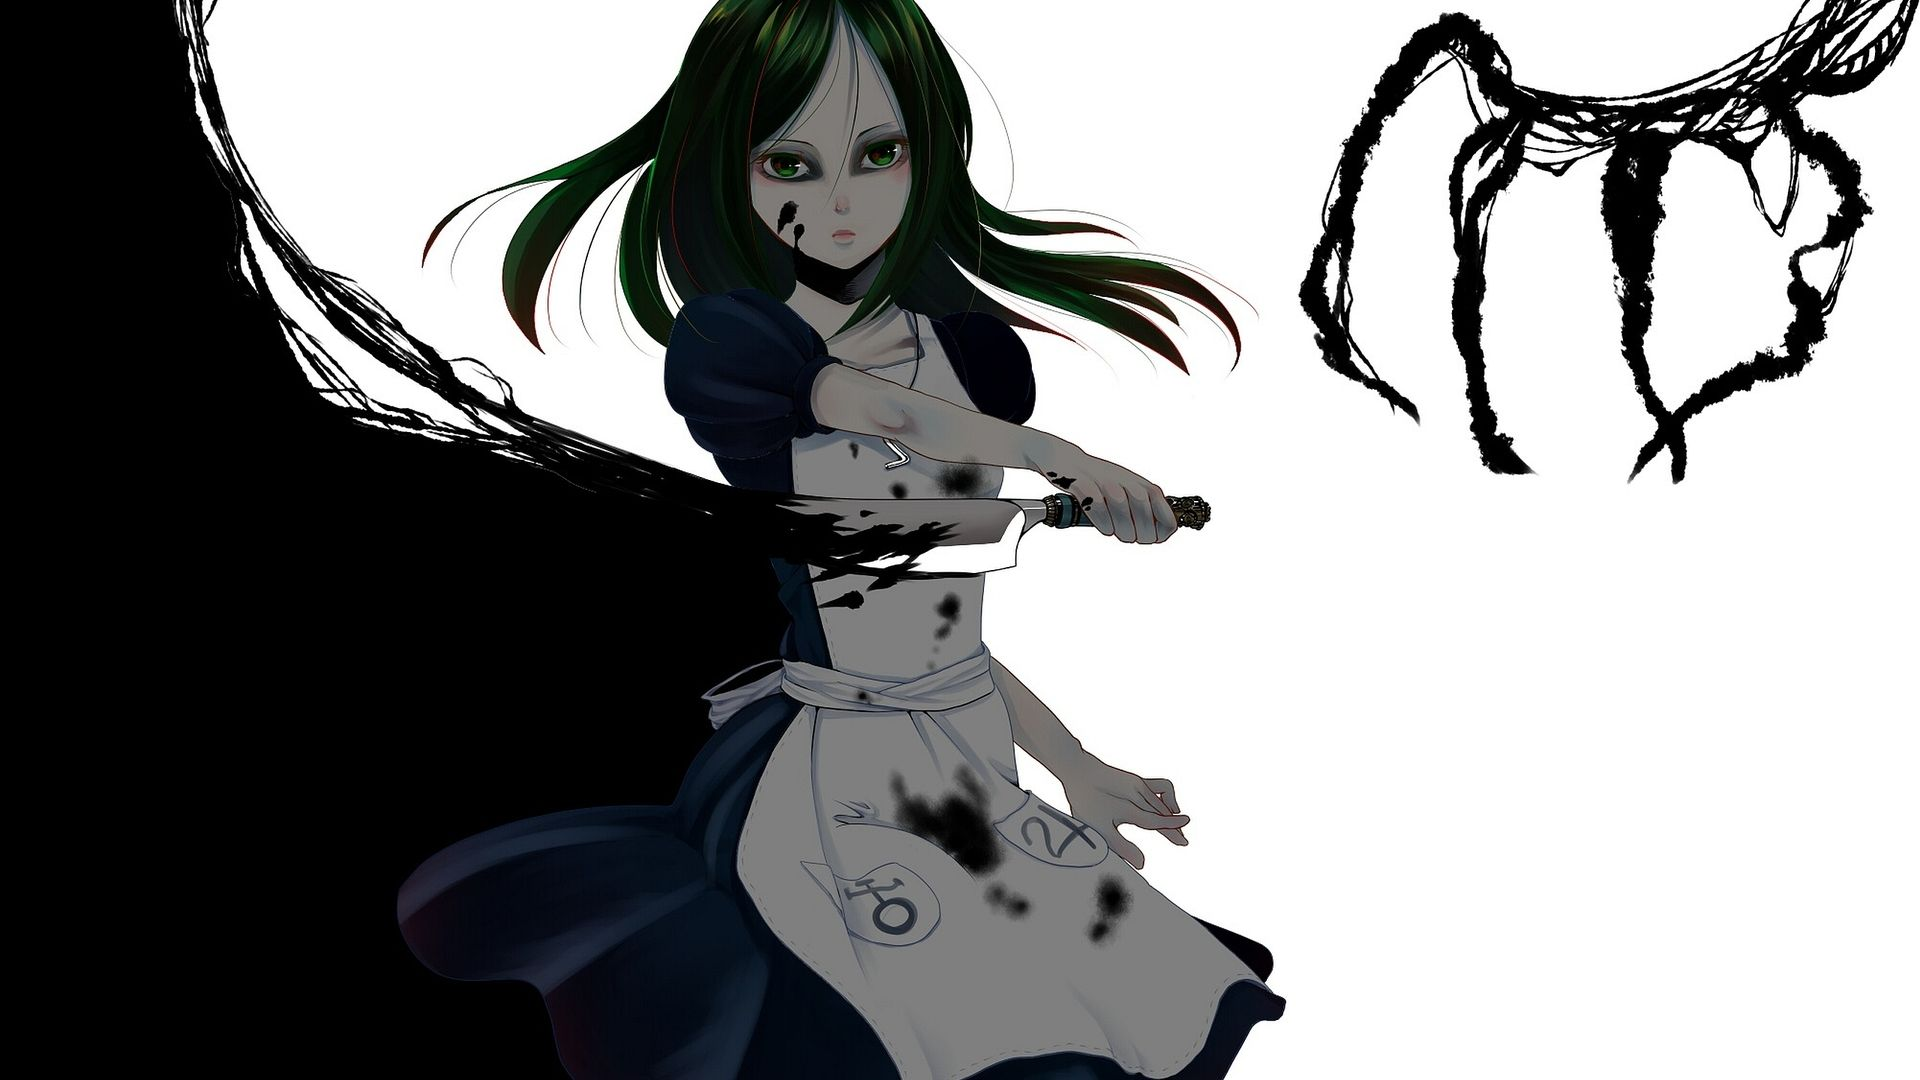 Alice In The Country Of Nightmares Wallpaper